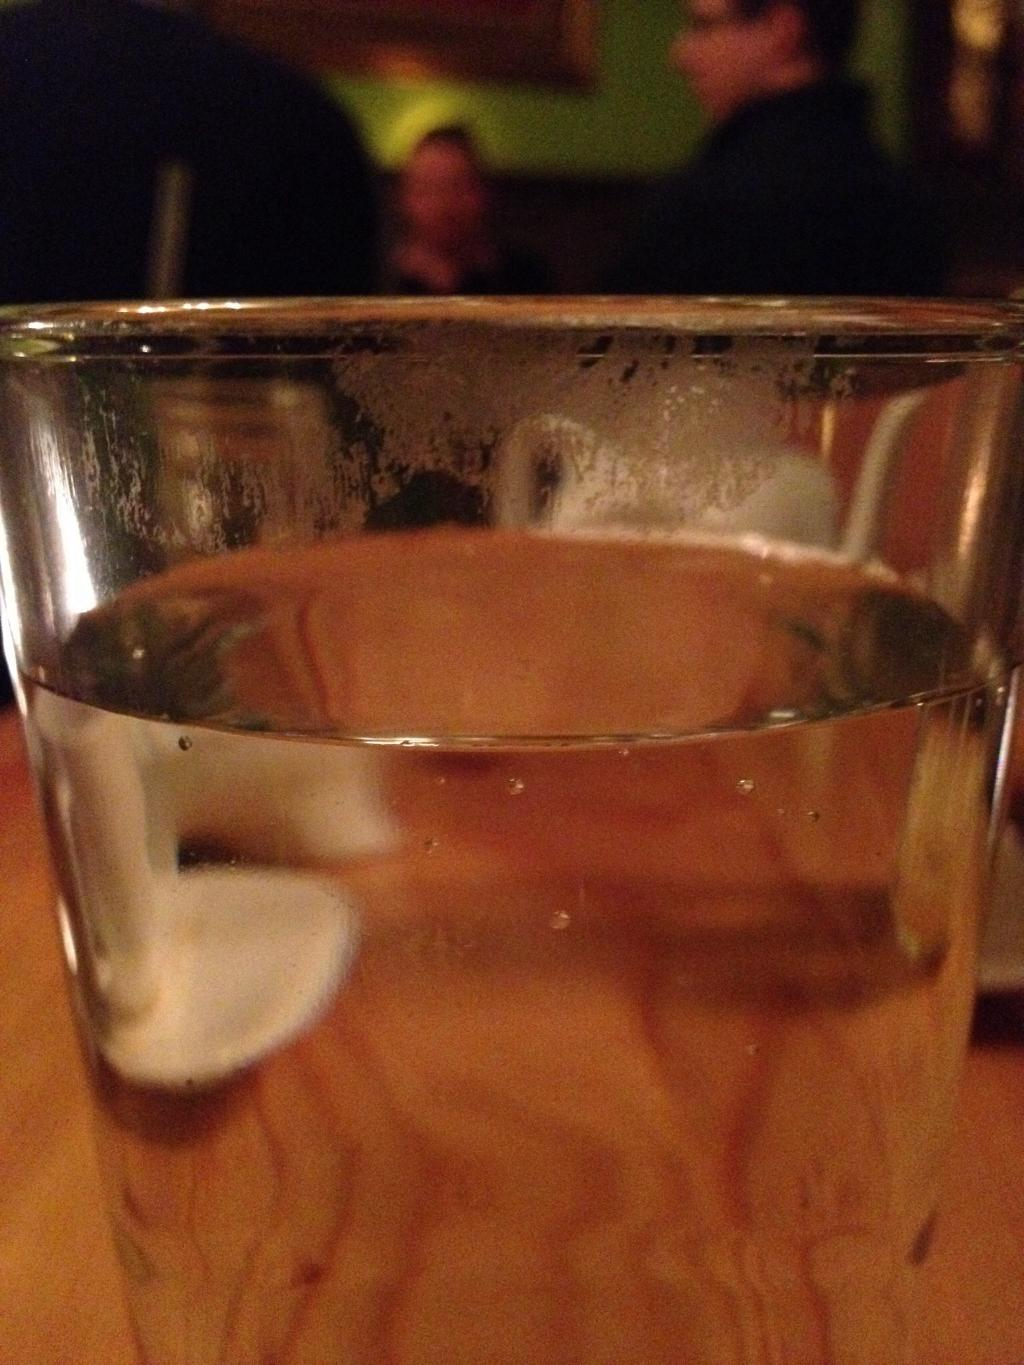 Dirty water glass